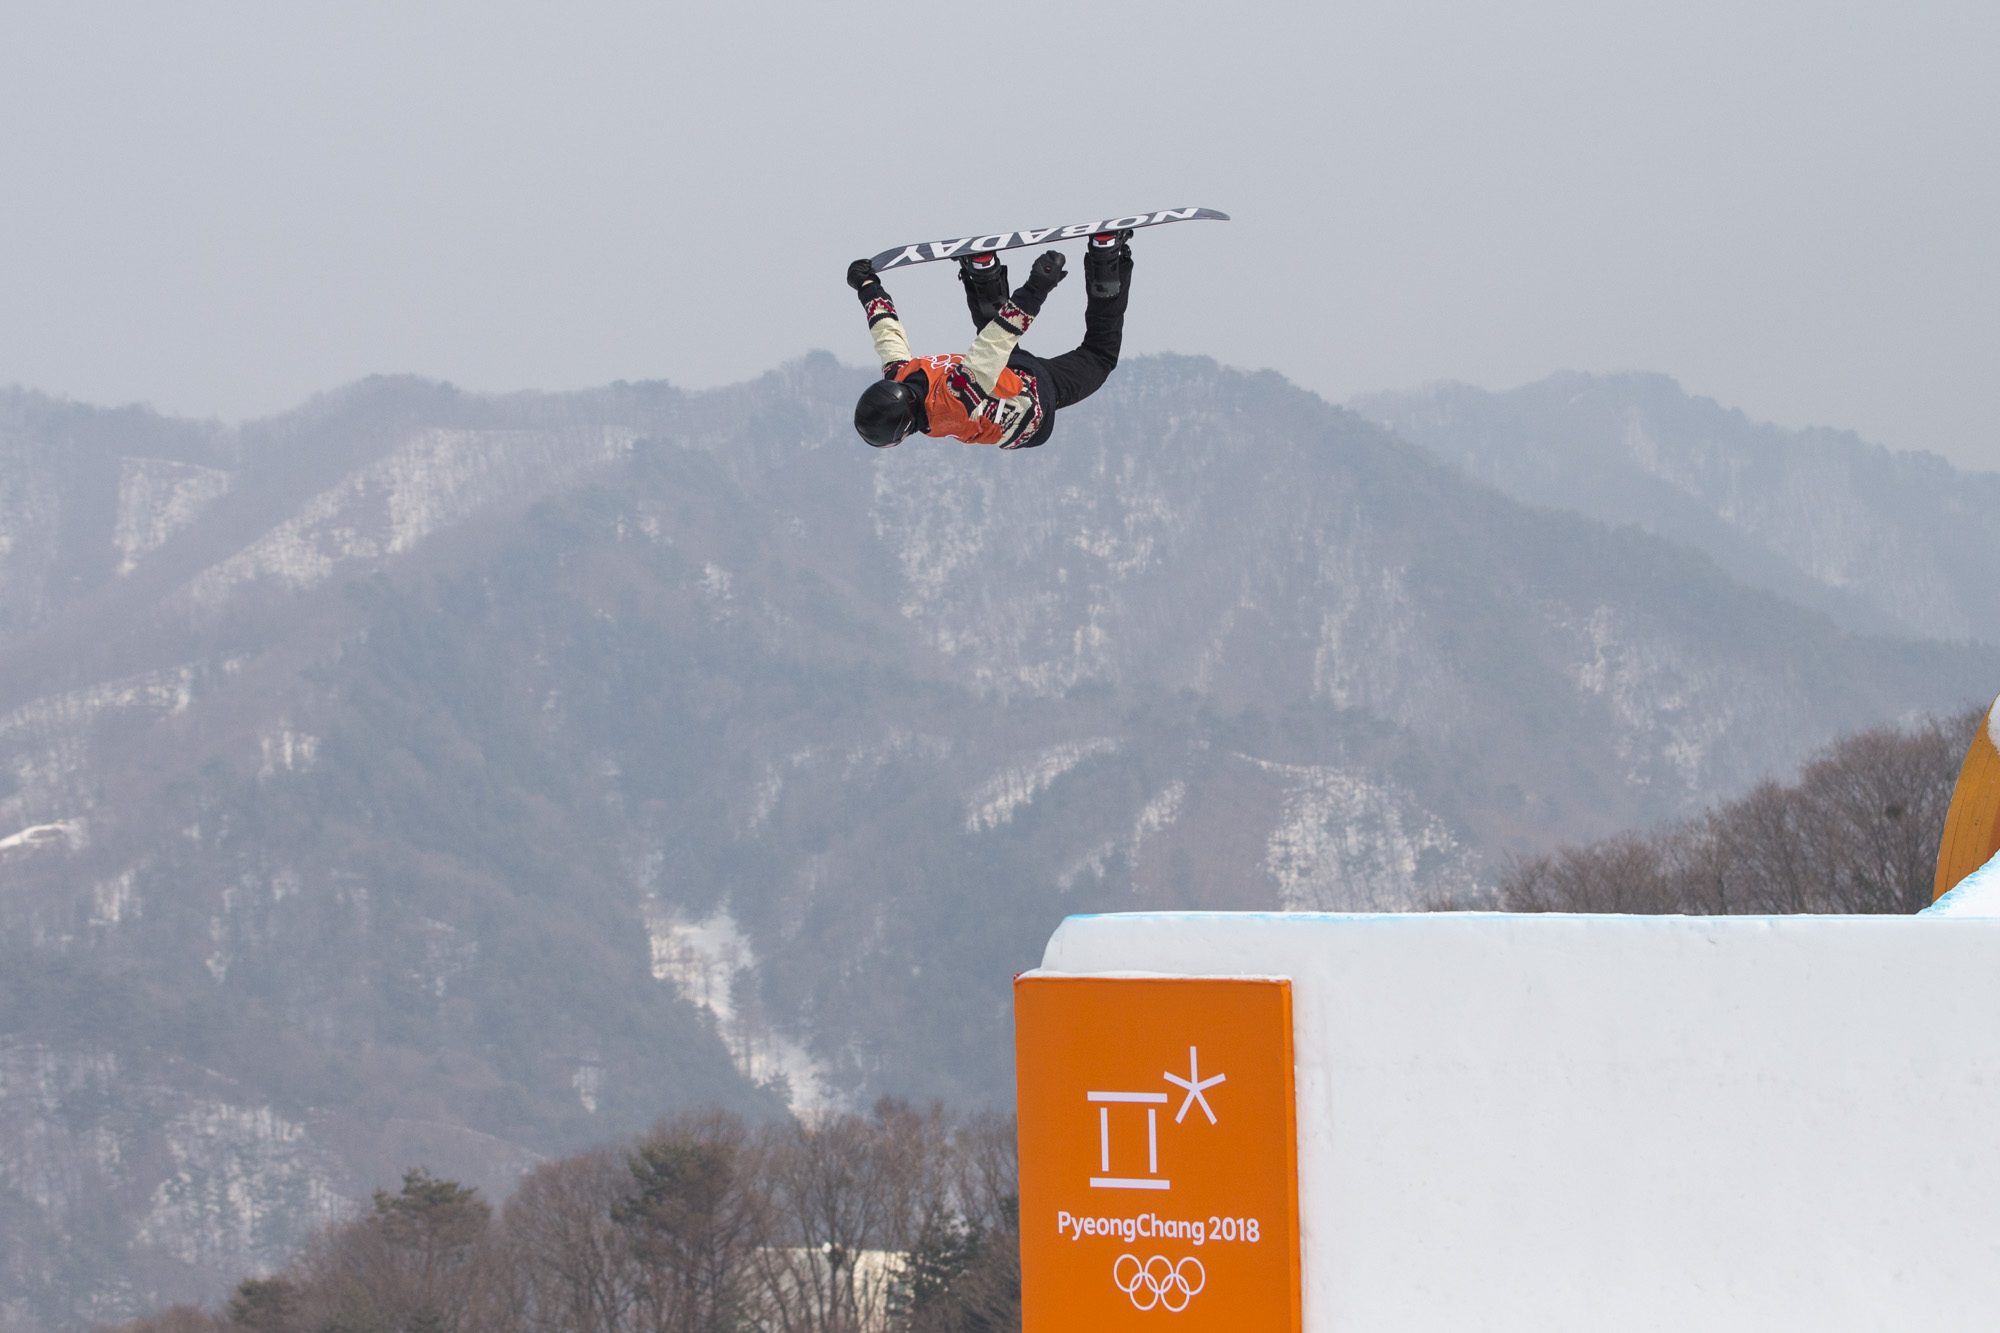 Team Canada Max Parrot PyeongChang 2018 Slopestyle Qualification